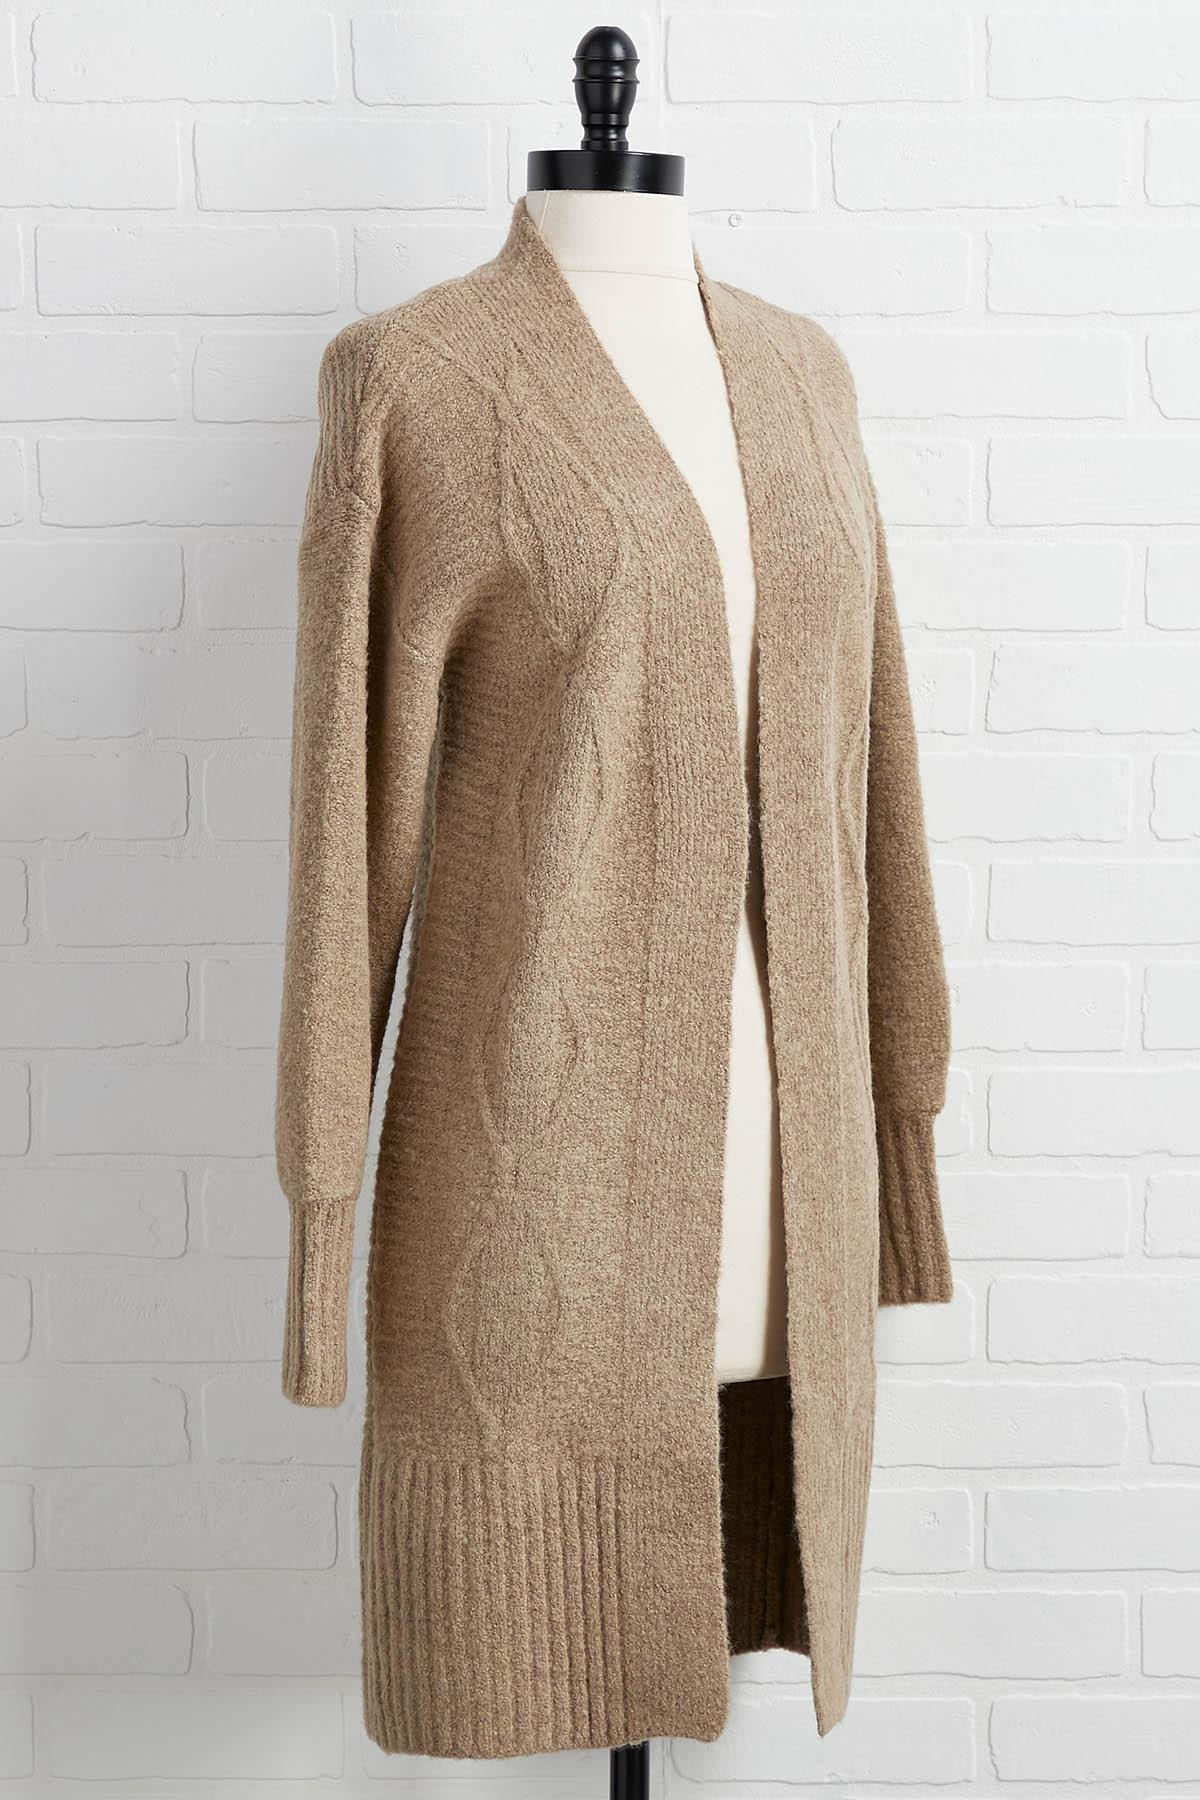 Believe Knit Or Not Cardigan